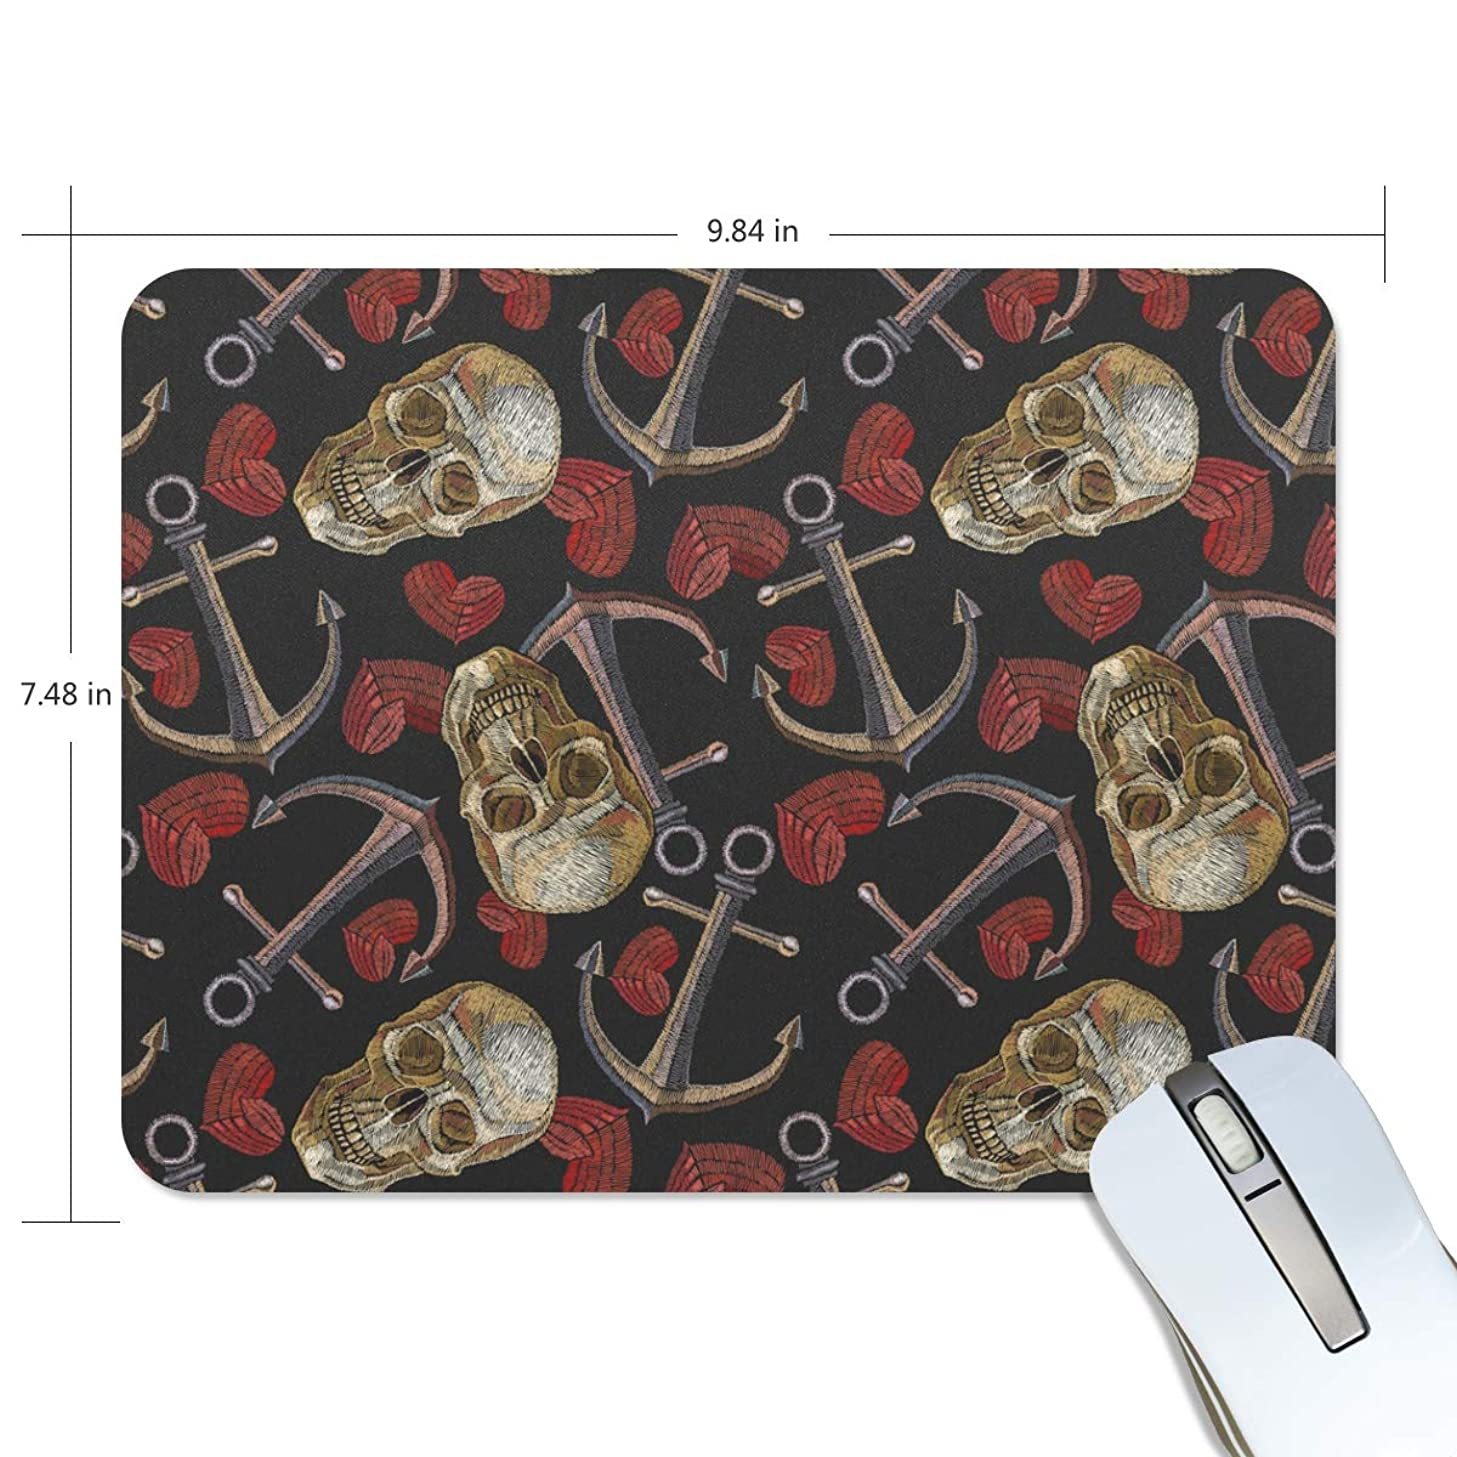 BlueViper Skull Anchor and Heart Mouse Pad Smooth Surface Gaming Pad Thick Non-Slip Rubber Base Colorful Cute Design Art Artist Painting Unique Novelty Gift for School Office Game